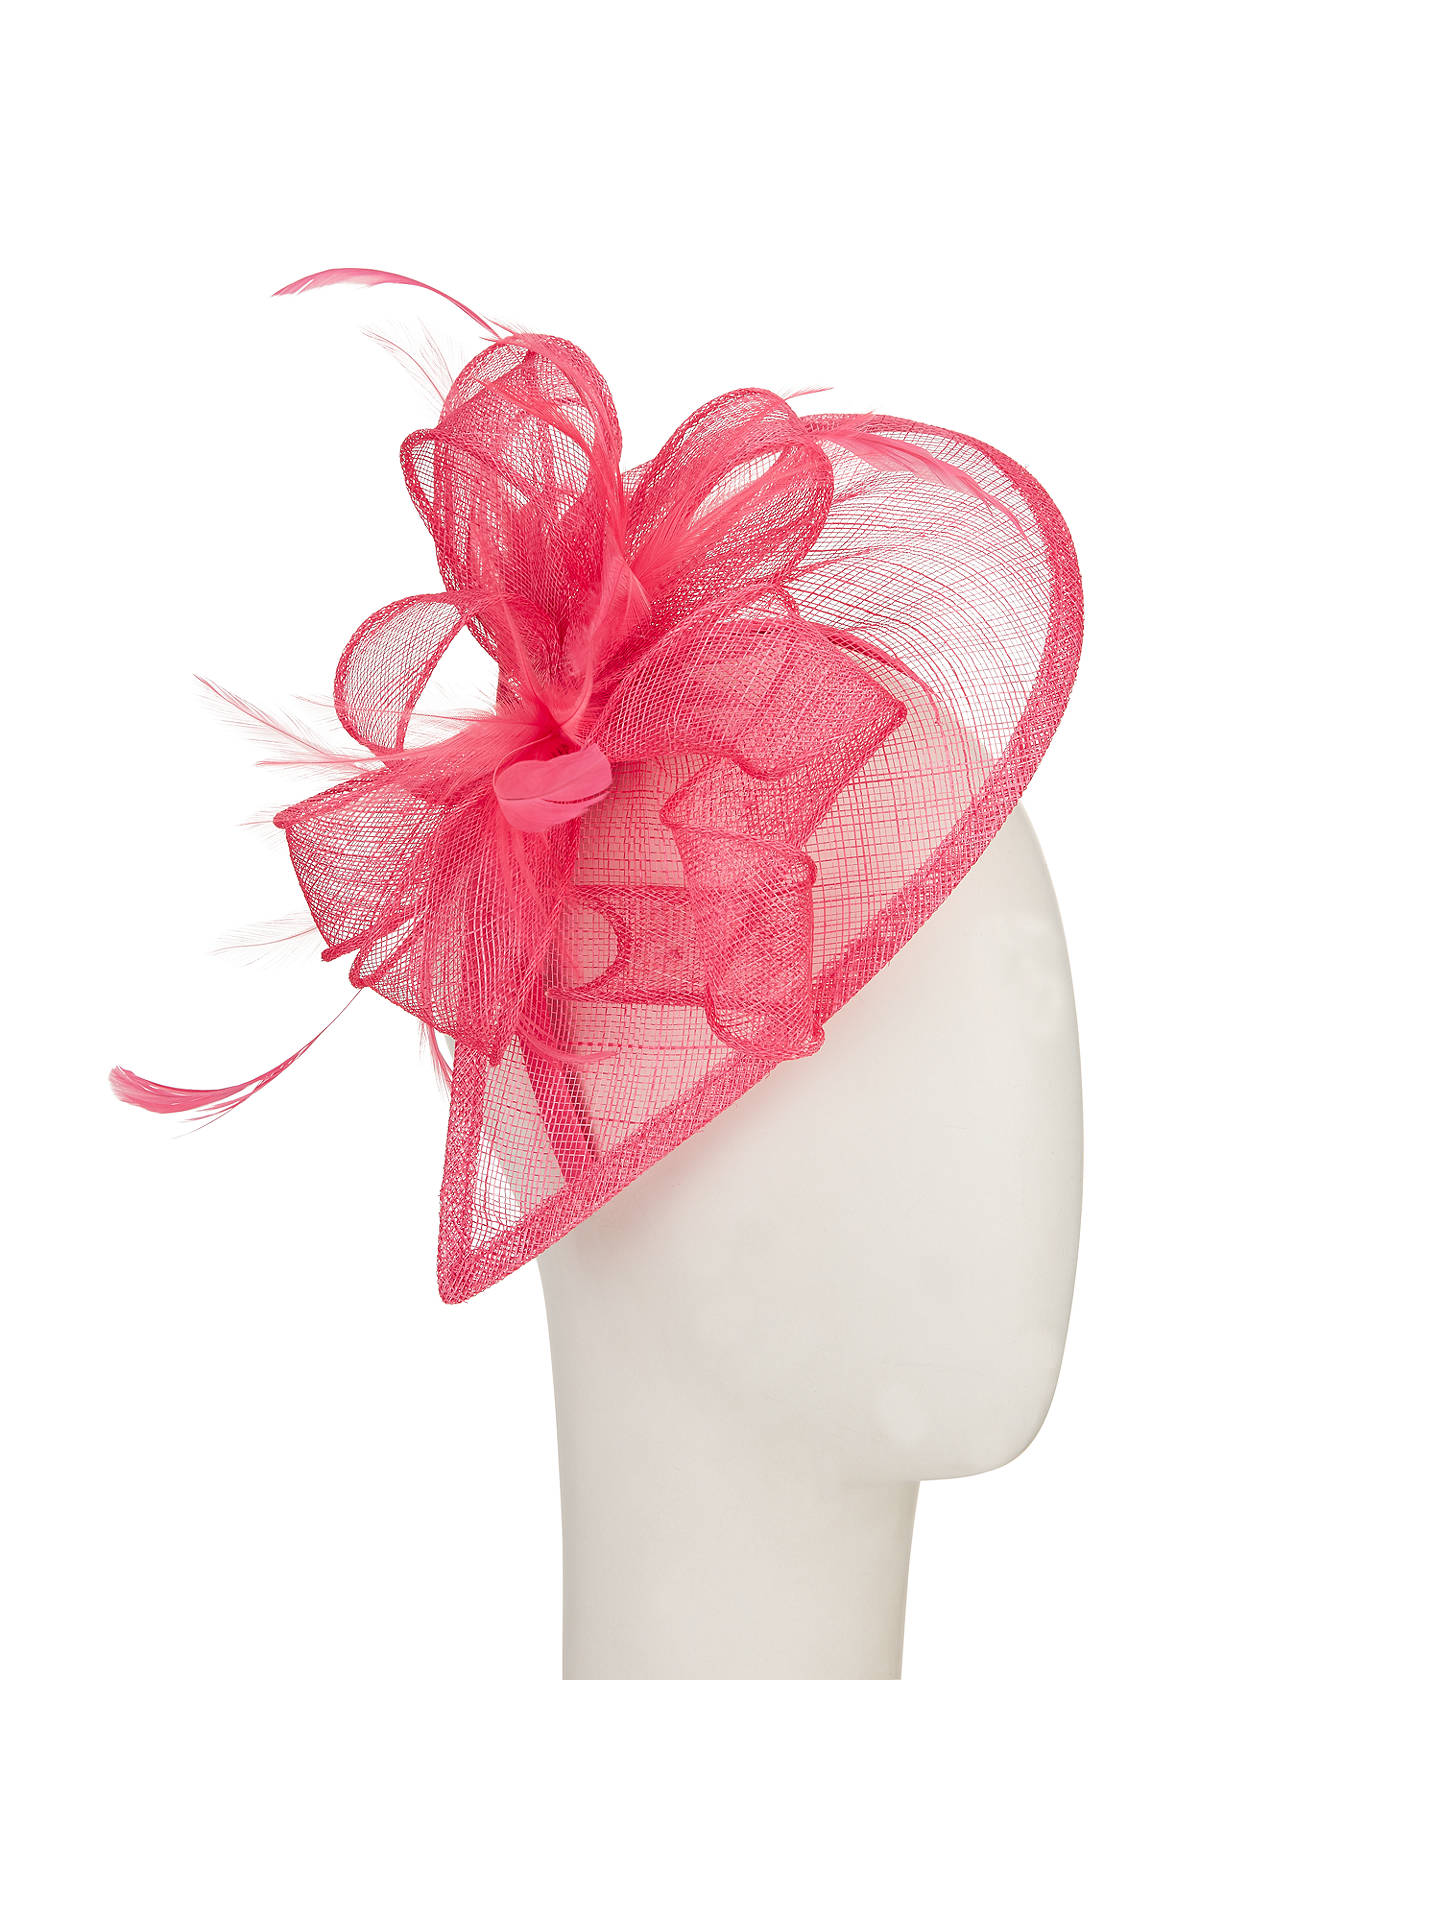 84a9985d226 BuyJohn Lewis Teardrop and Feathers Fascinator